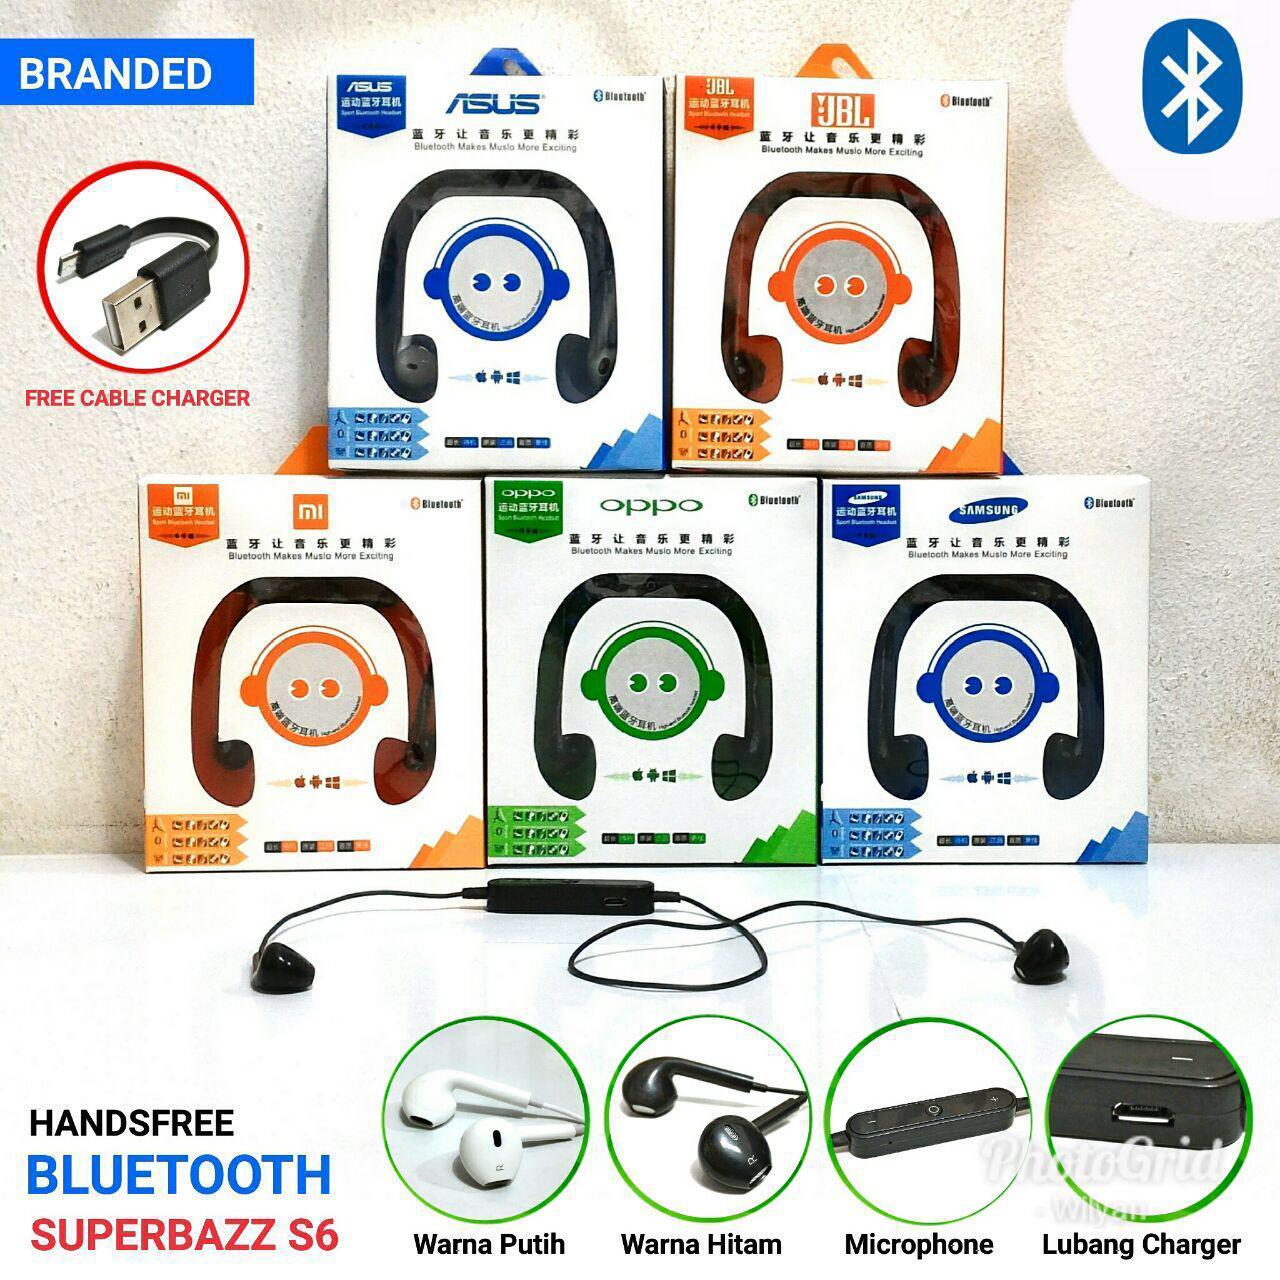 Handsfree Bluetooth Superbass S6 Murah